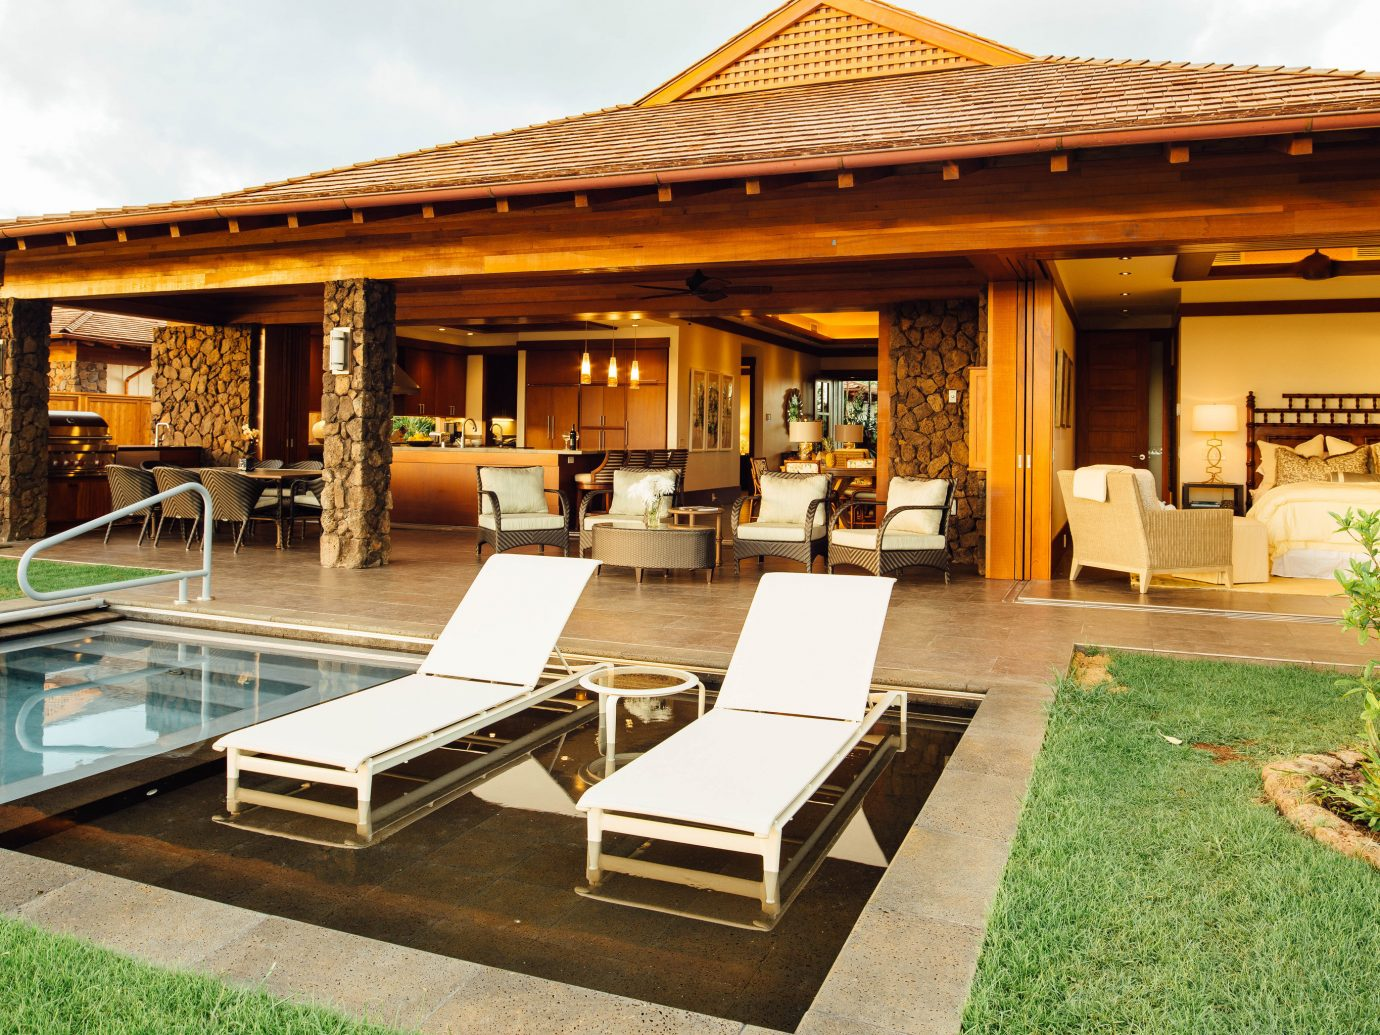 Hotels outdoor building grass property estate home Villa outdoor structure real estate Resort backyard swimming pool Courtyard pavilion eco hotel hacienda Patio mansion